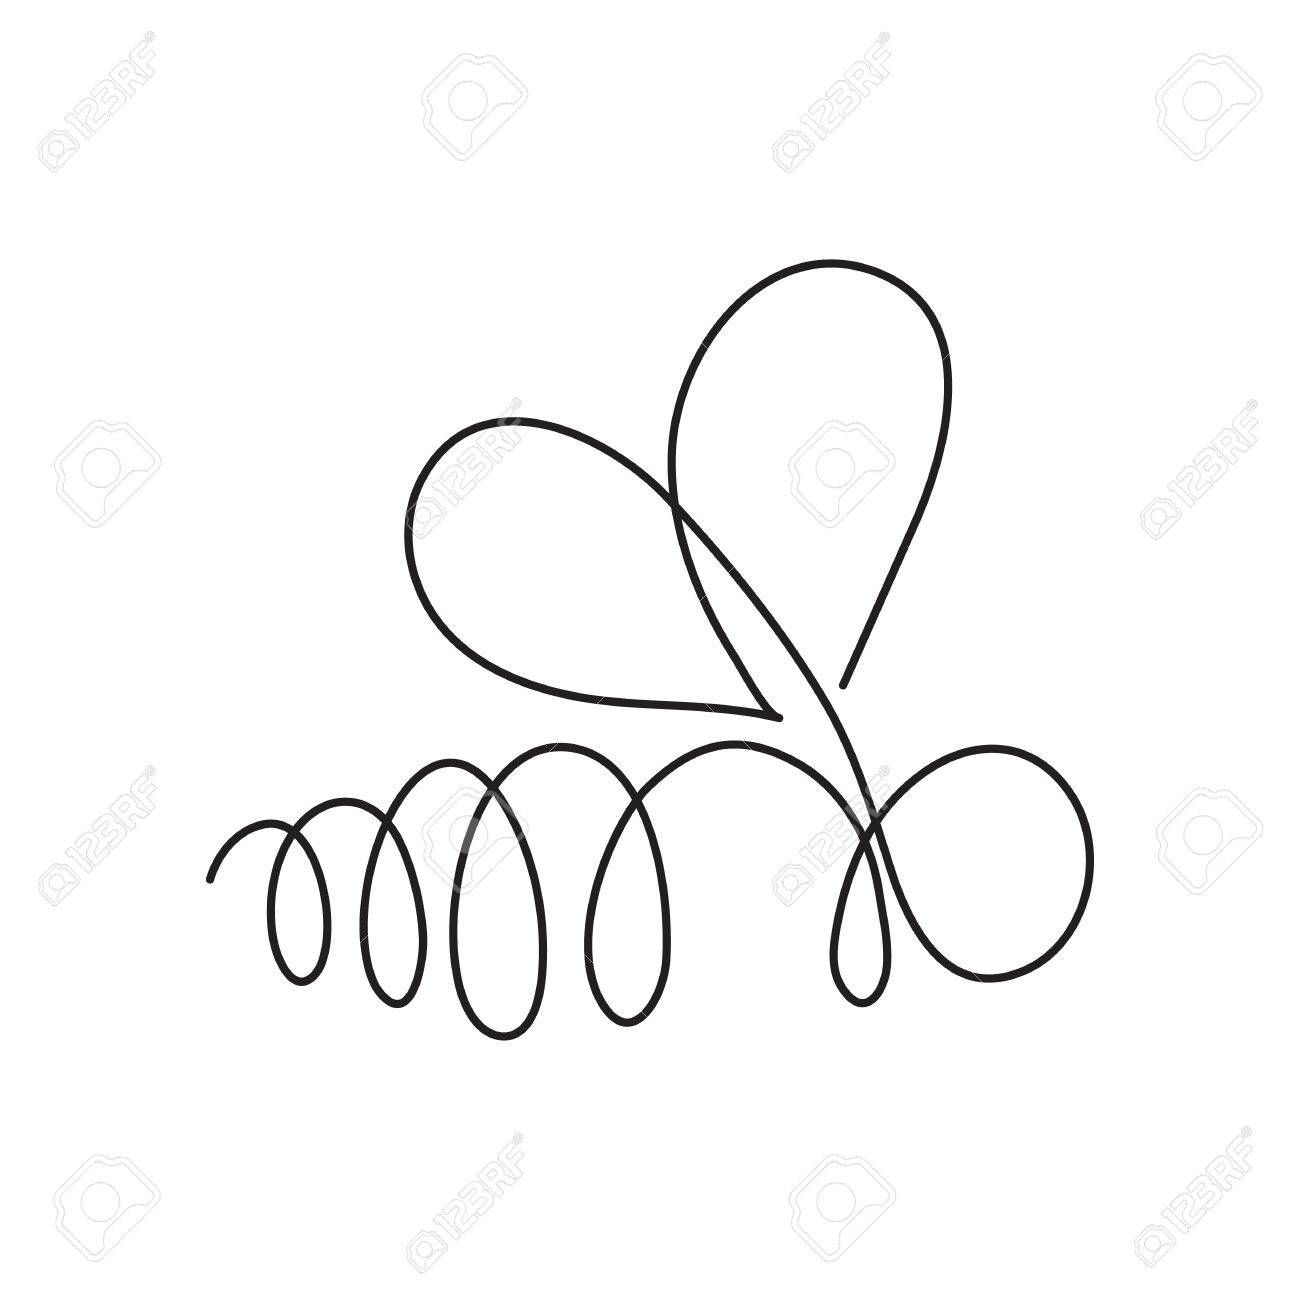 Continuous Line Bee Abstract Modern Decoration Vector Illustration One Drawing Of Insect